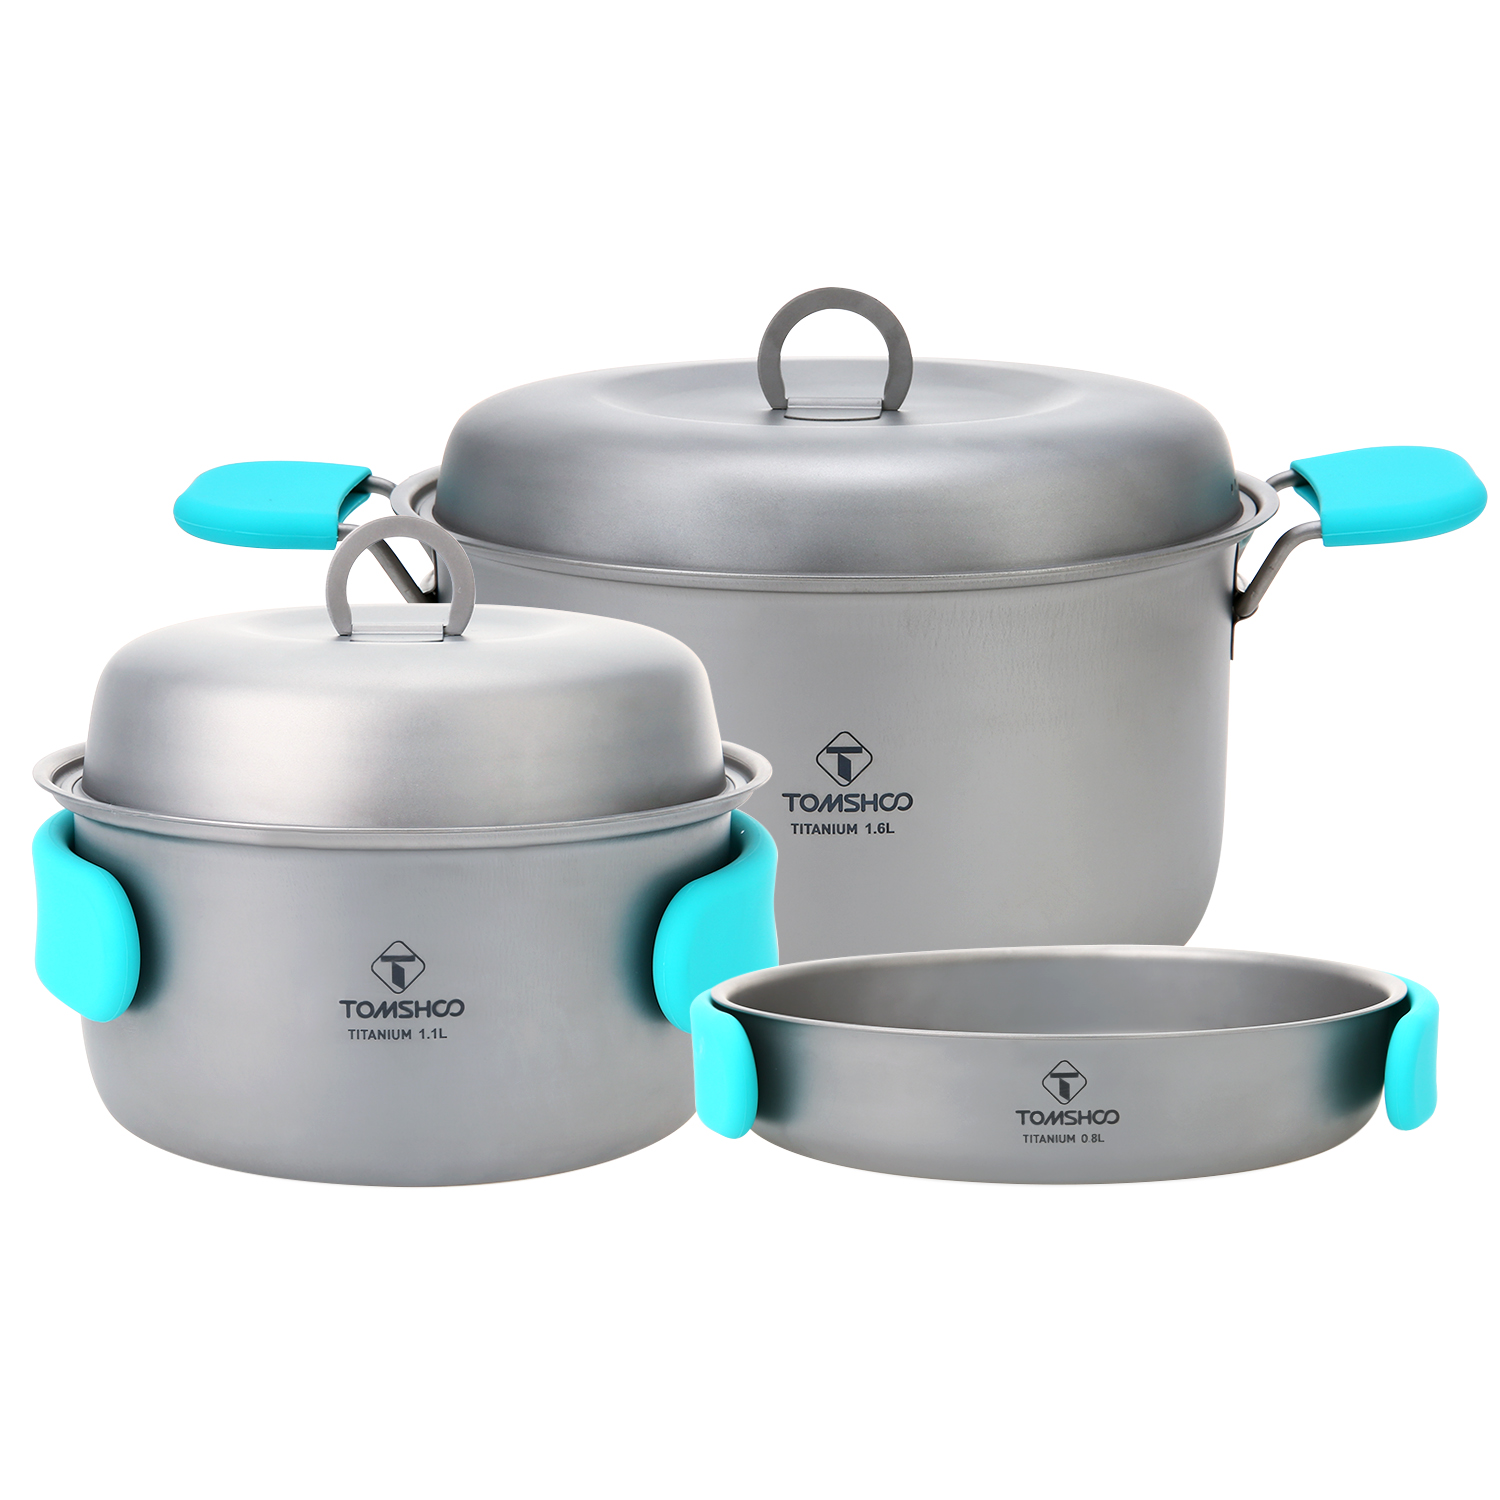 Tomshoo 3 Piece Titanium Cookset Outdoor Camping Hiking Backpacking Picnic Cookware Cooking Tool Set Pot Pan Travel Cookware